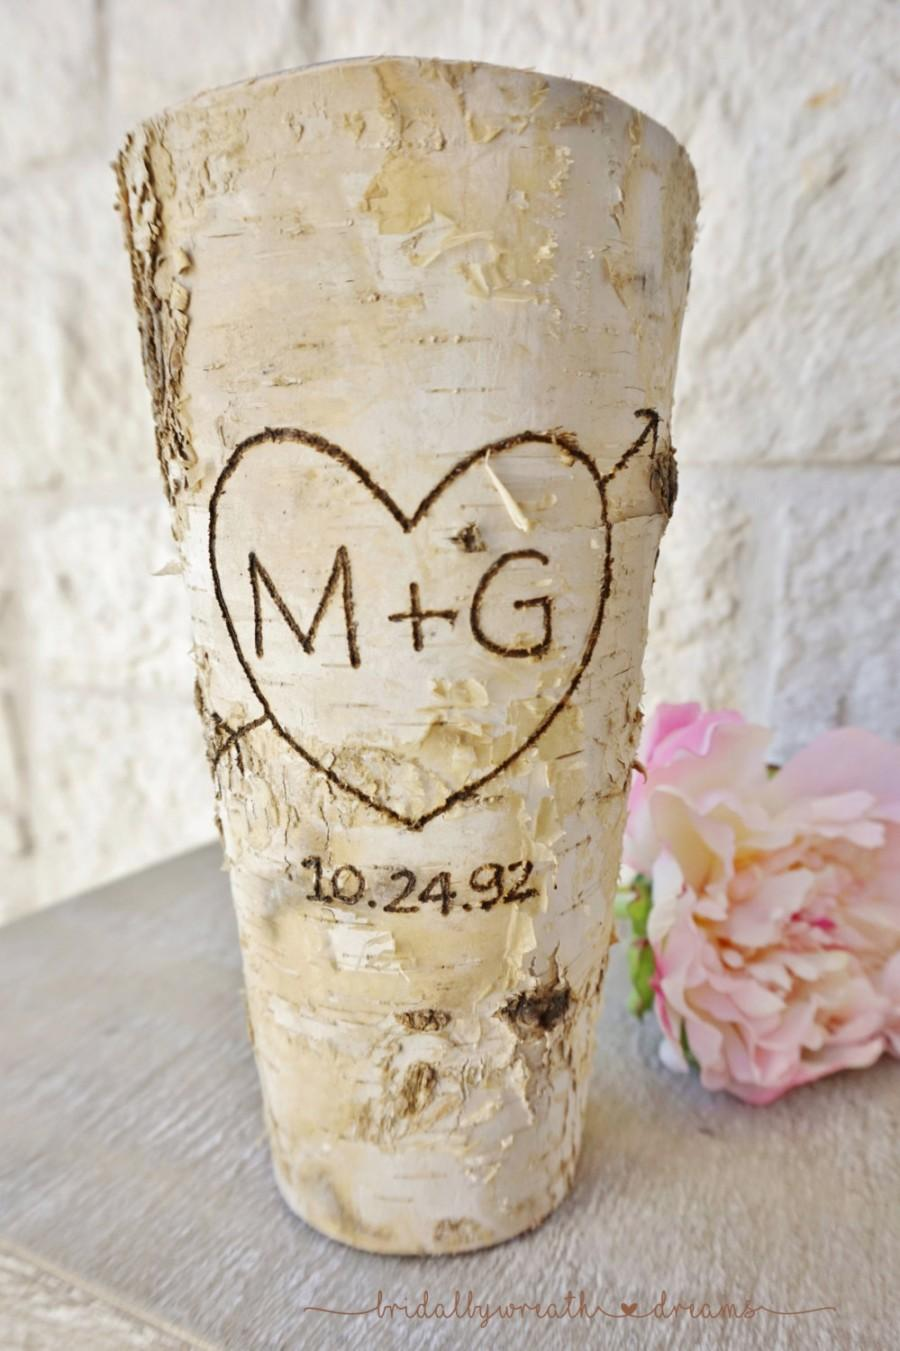 Initials Date Birch Bark Vase Centerpiece Wedding Rustic Chic Shabby Country Garden